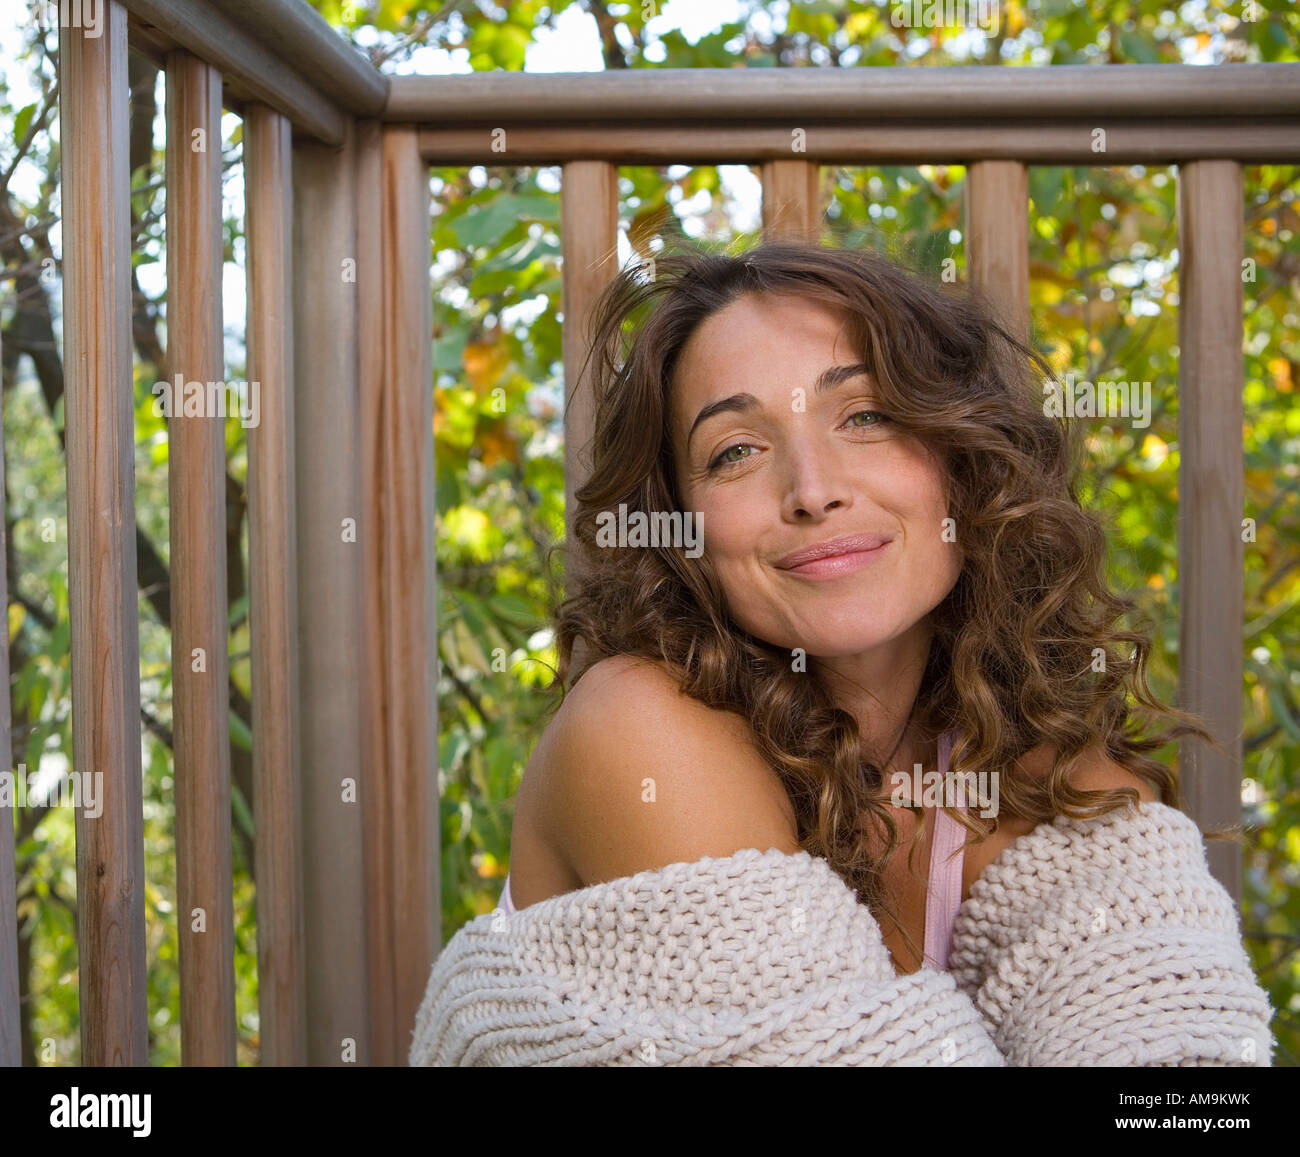 Woman sitting on balcony smiling. Stock Photo